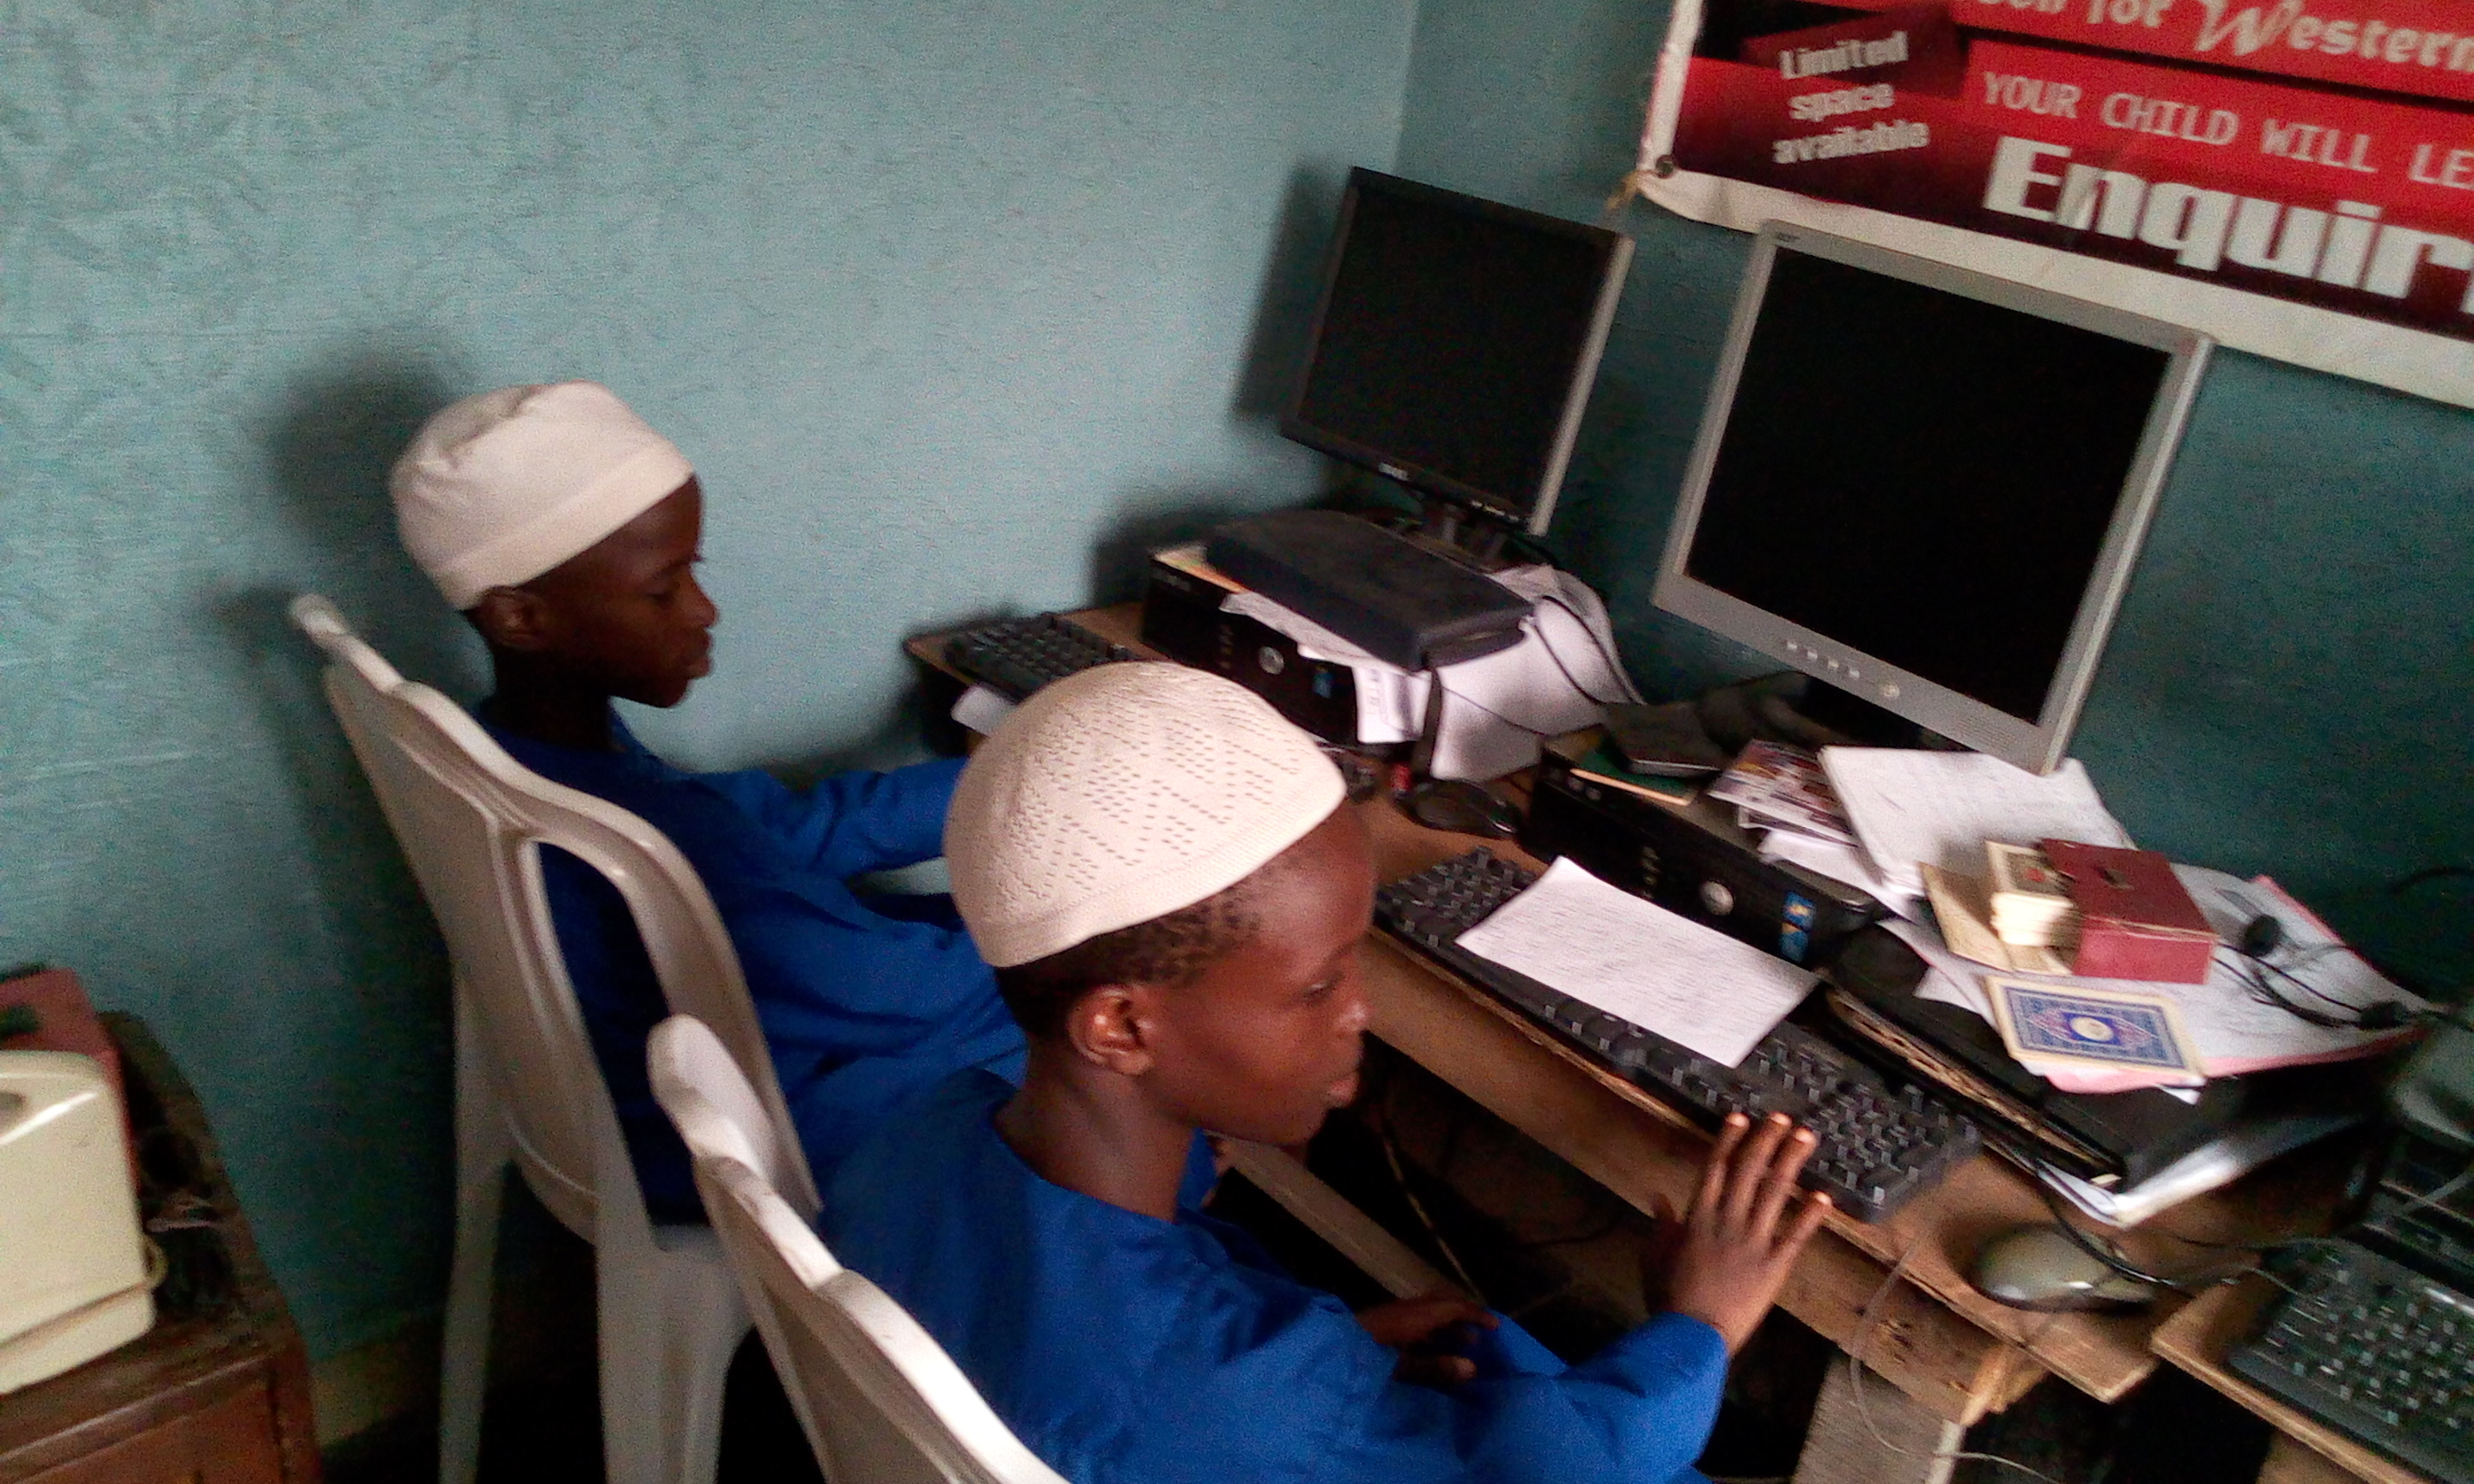 ABD RAHMAN AKINTUNDE AND HABEEB ADEWALE ARE IN COMPUTER LAB IN THE HOSTEL1